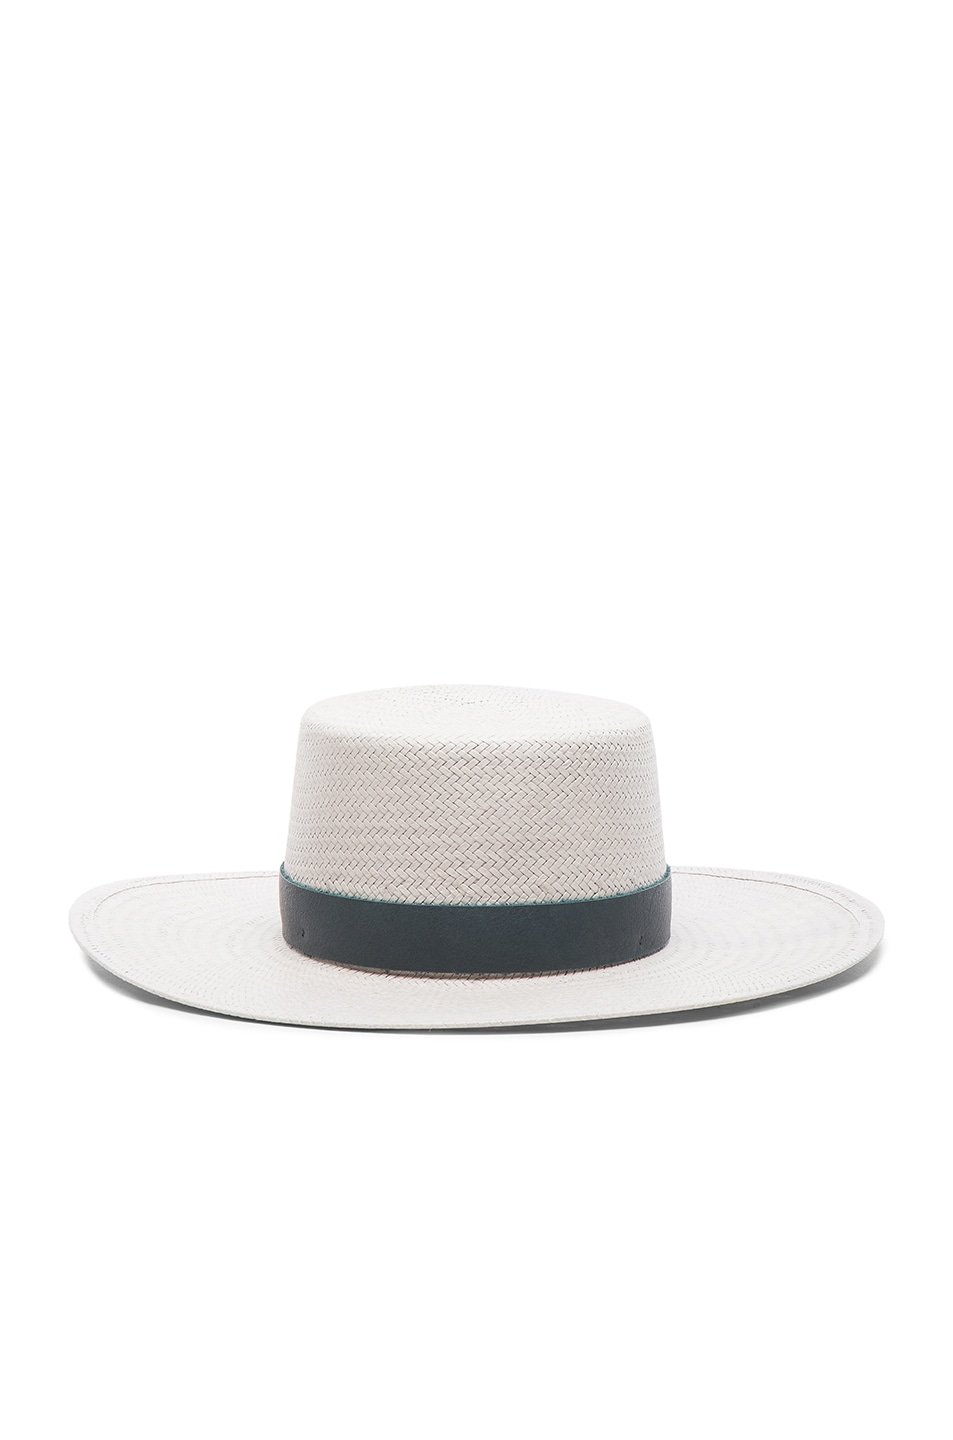 Image 1 of Janessa Leone Exclusive Wright Hat in Mineral Grey